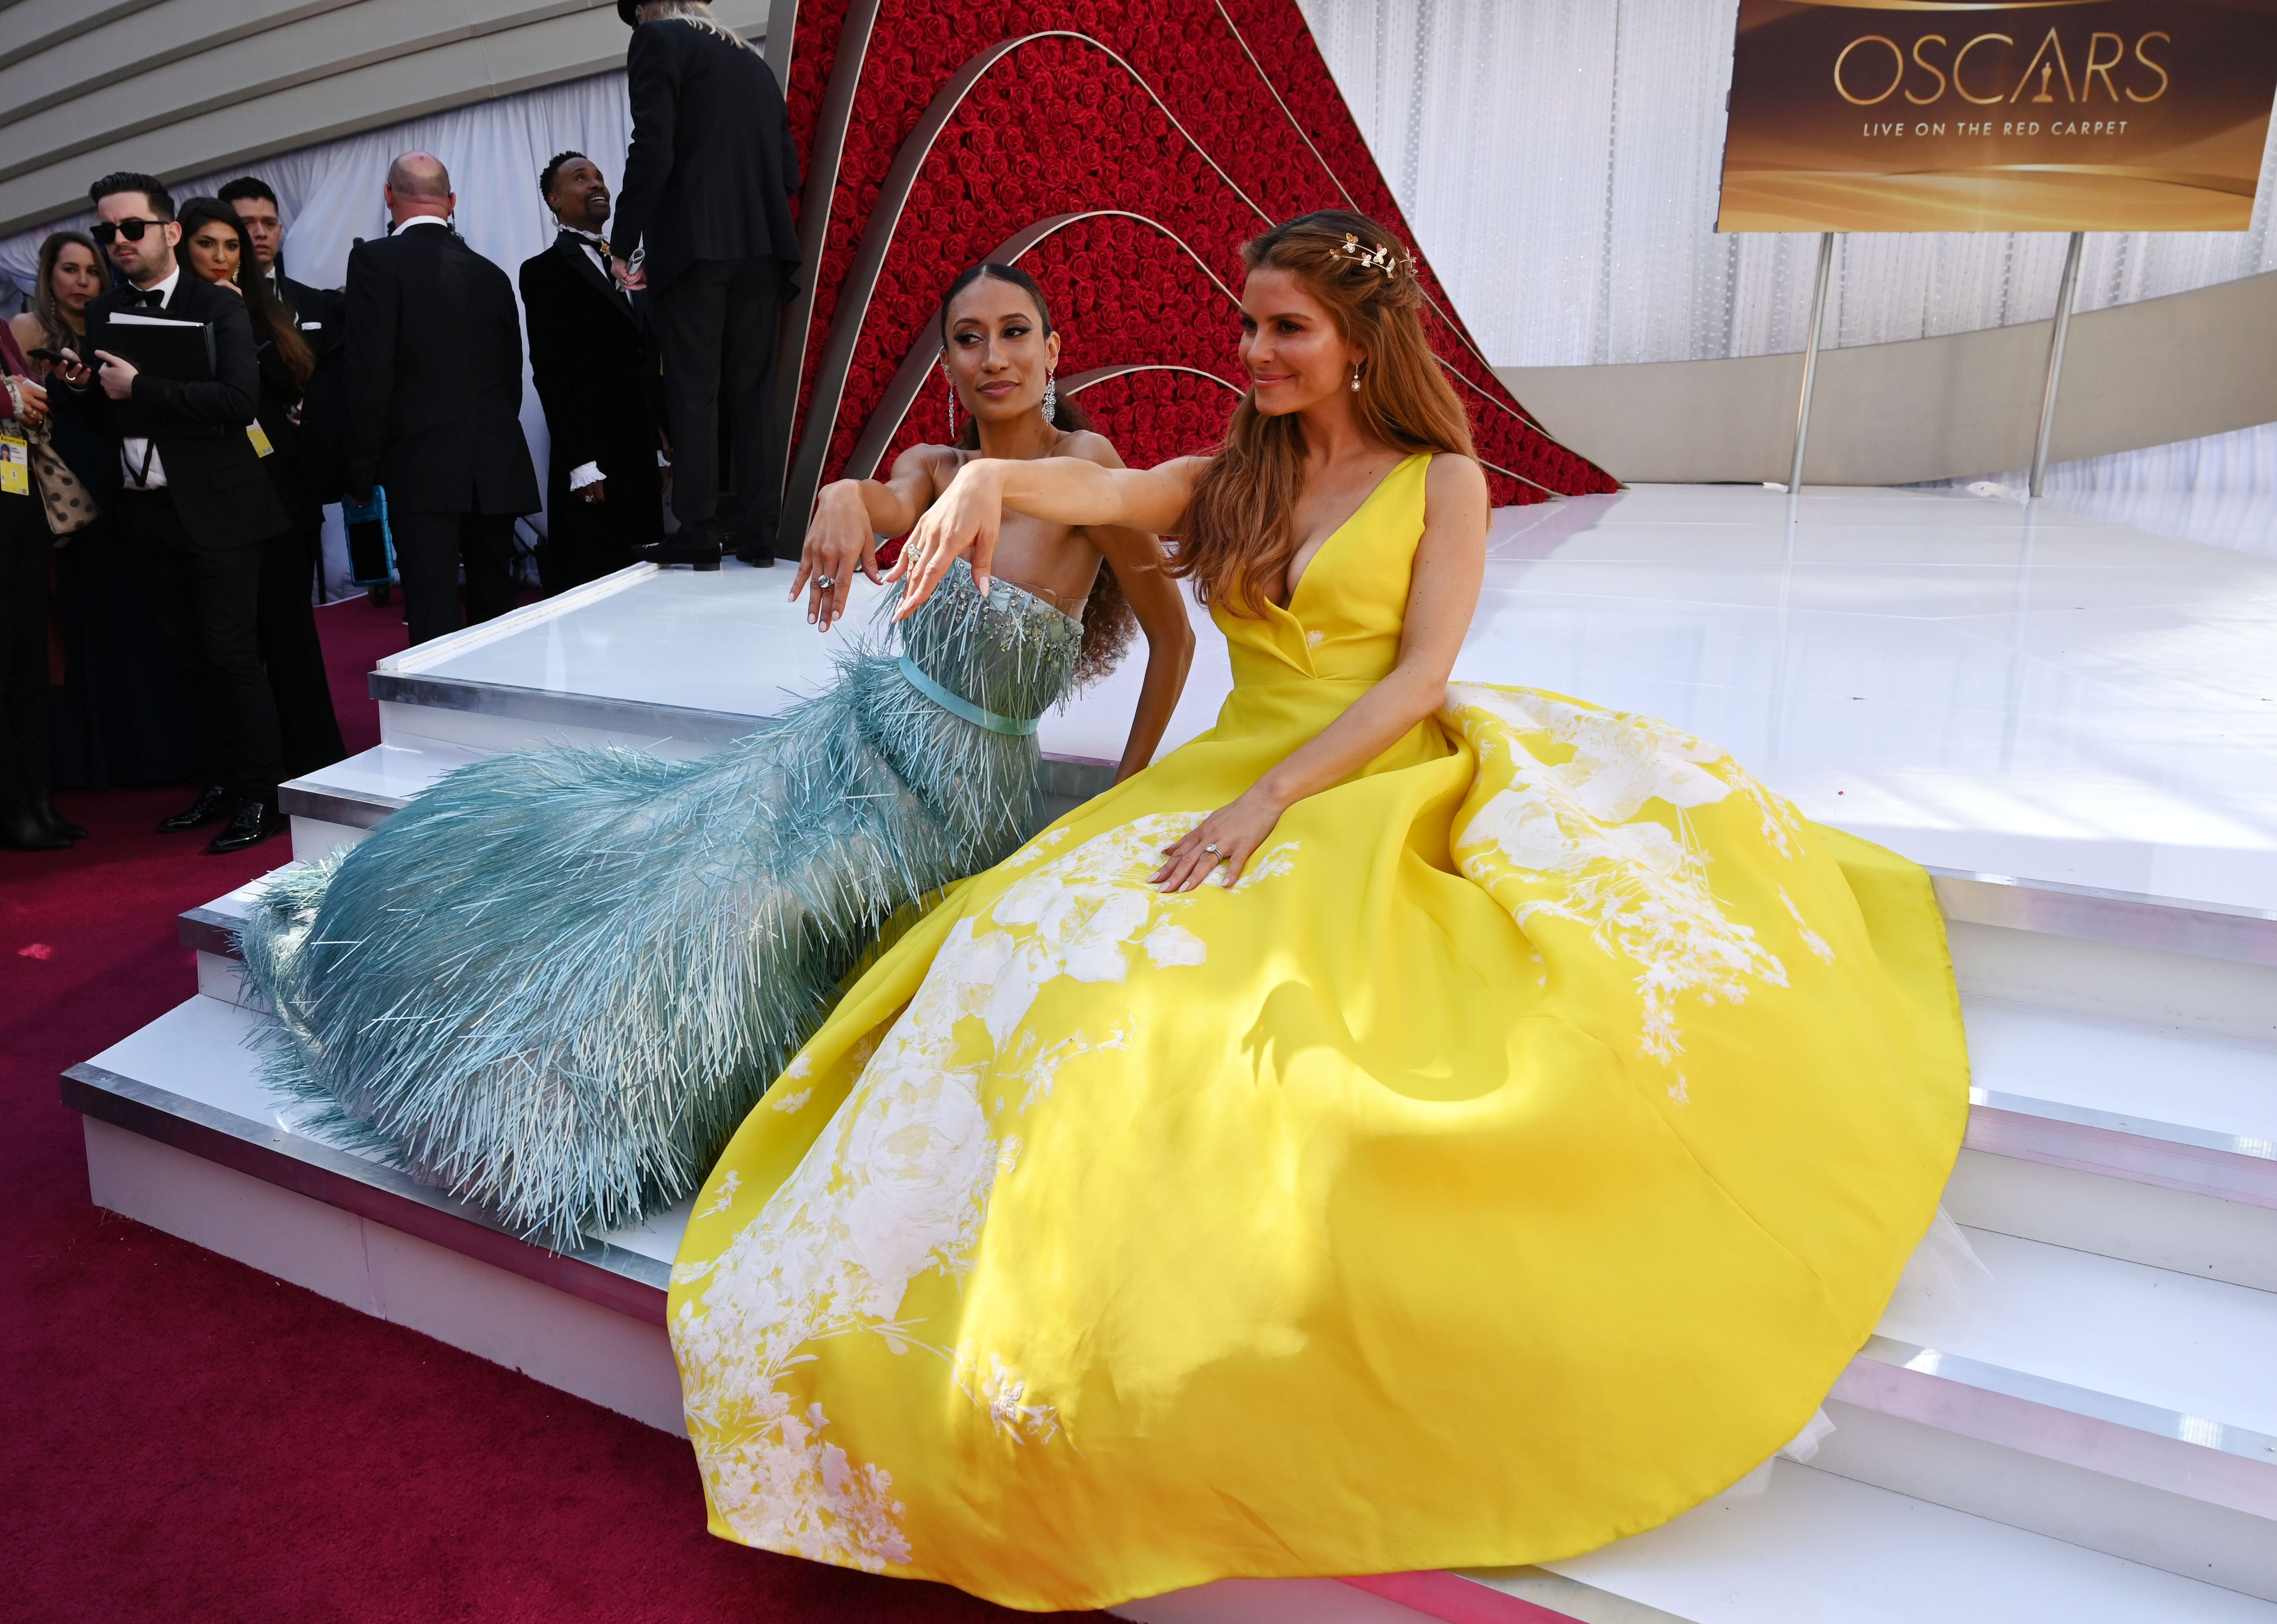 February 24, 2019; Los Angeles, CA, USA; Elaine Welteroth (L) and Maria Menounos pose at the 91st Academy Awards at the Dolby Theatre. Mandatory Credit: Robert Hanashiro-USA TODAY NETWORK (Via OlyDrop)